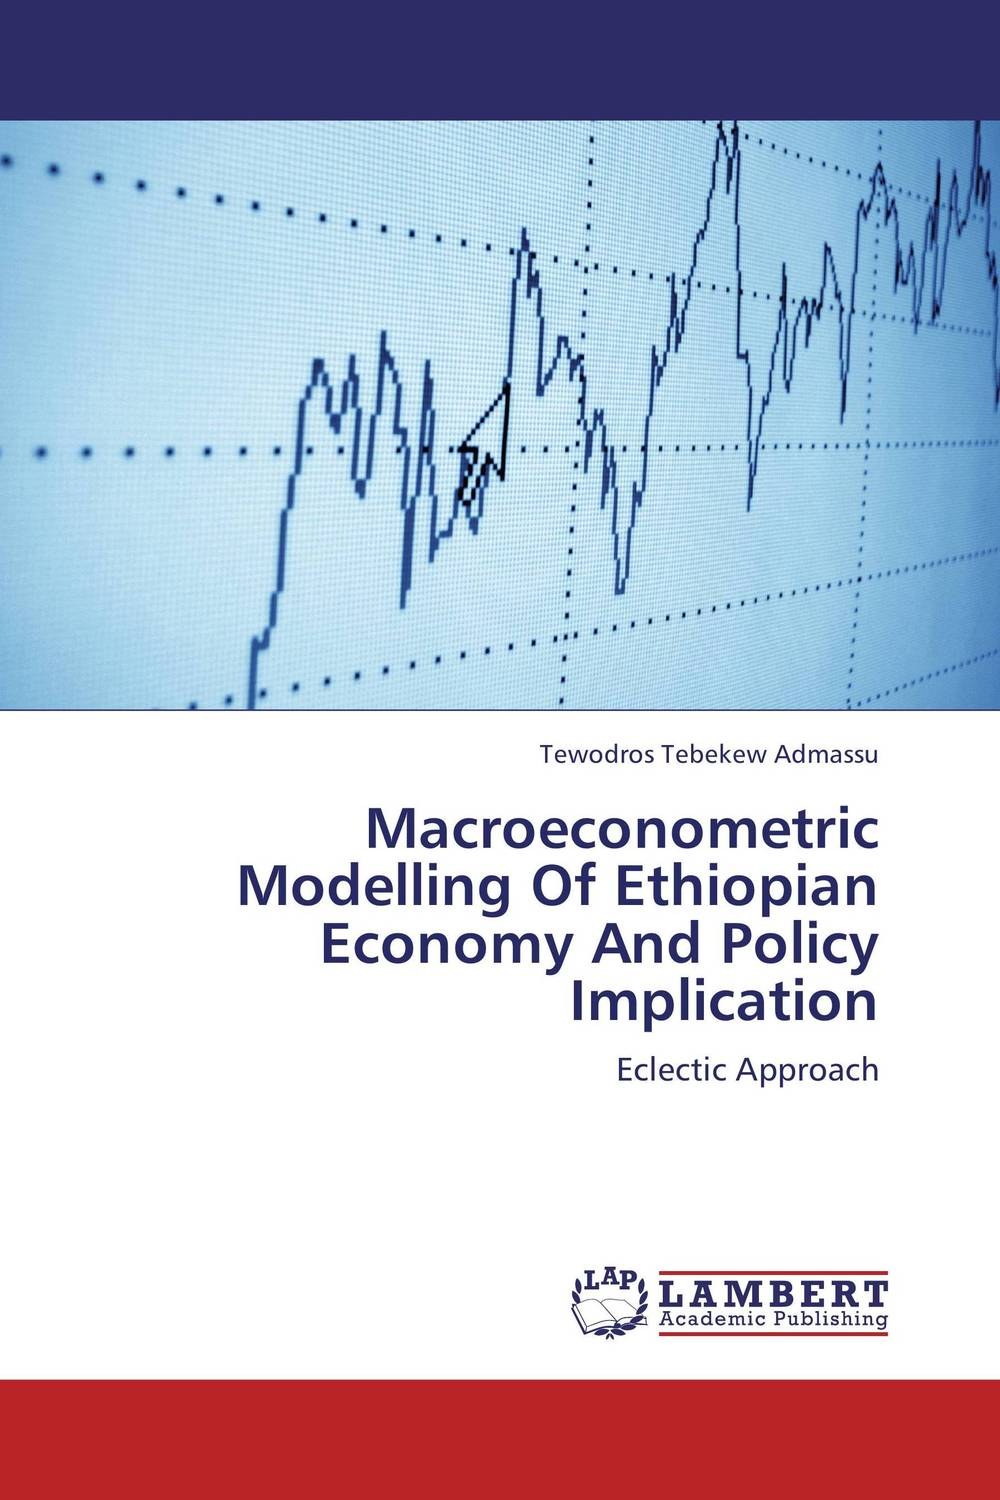 Macroeconometric Modelling Of Ethiopian Economy And Policy Implication xuan liu time consistency of optimal policy in a small open economy